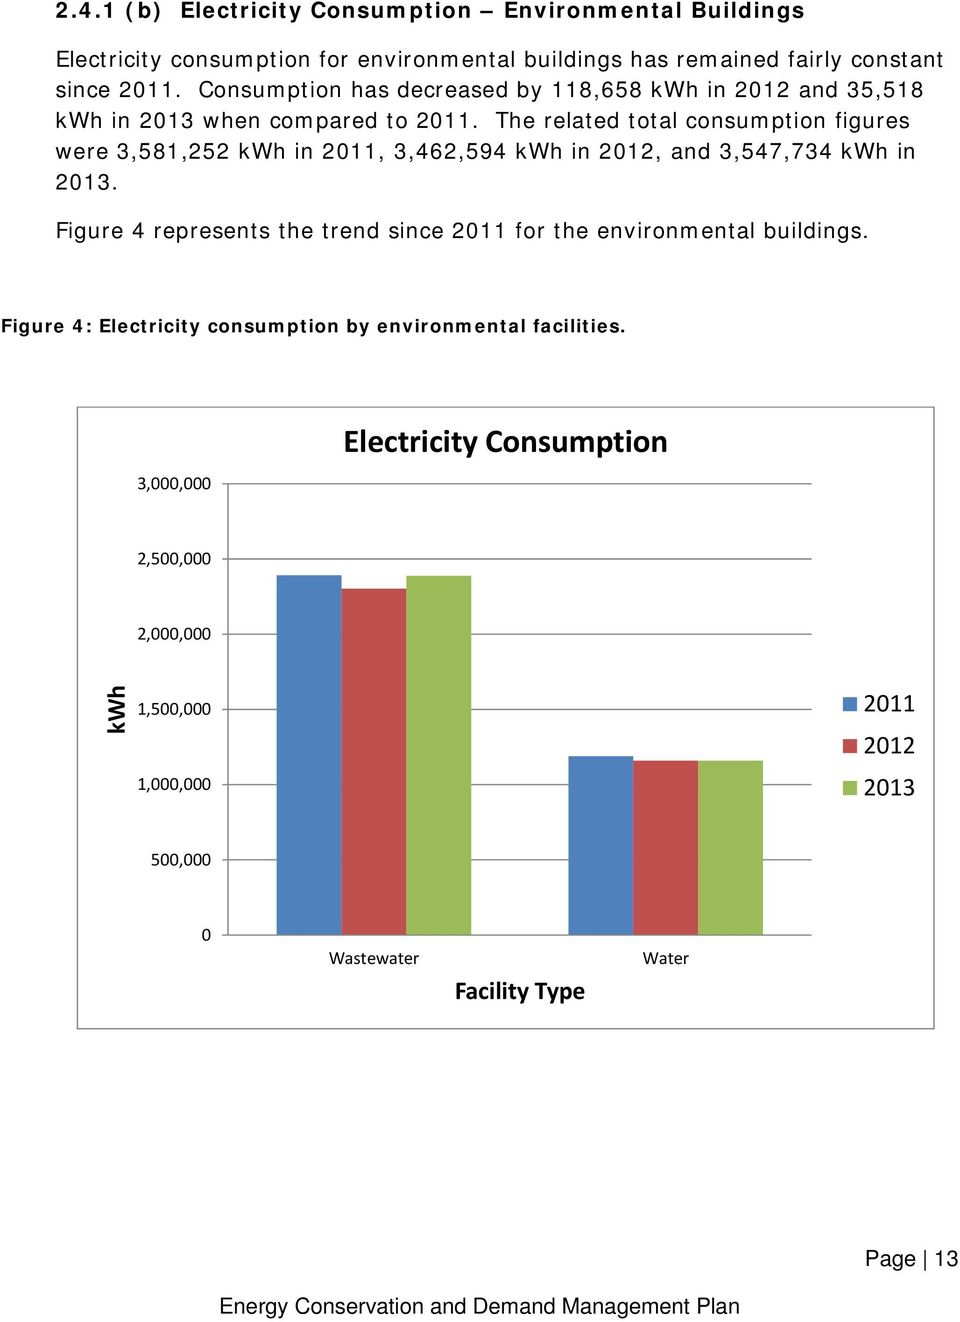 The related total consumption figures were 3,581,252 kwh in 2011, 3,462,594 kwh in 2012, and 3,547,734 kwh in 2013.